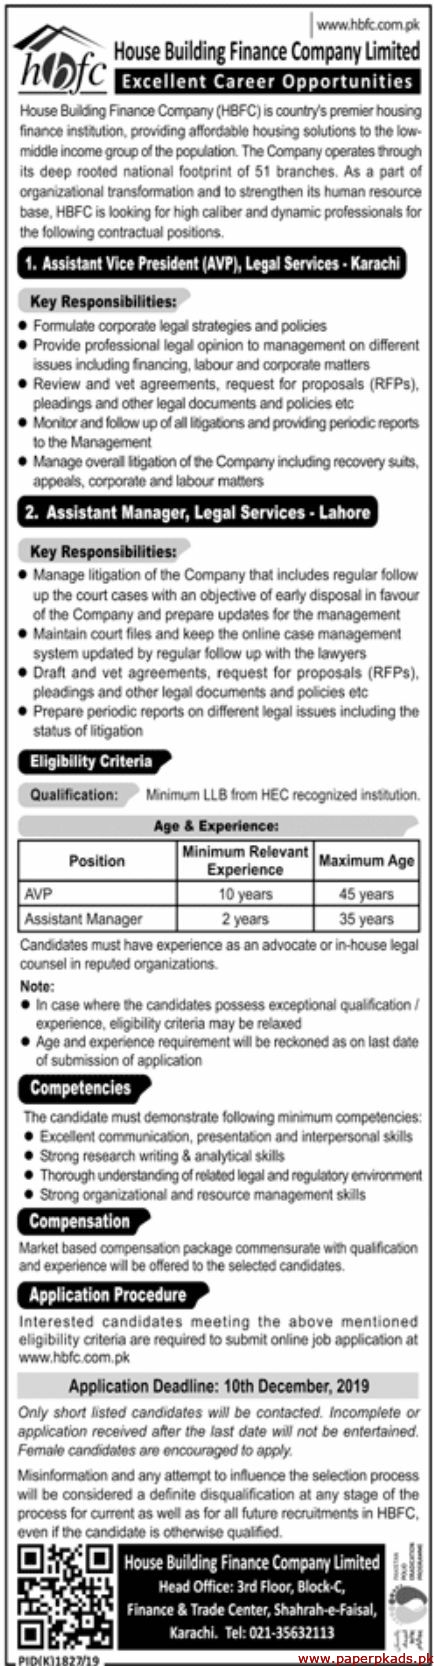 House Building Finance Company Limited HBFC Jobs 2019 Latest